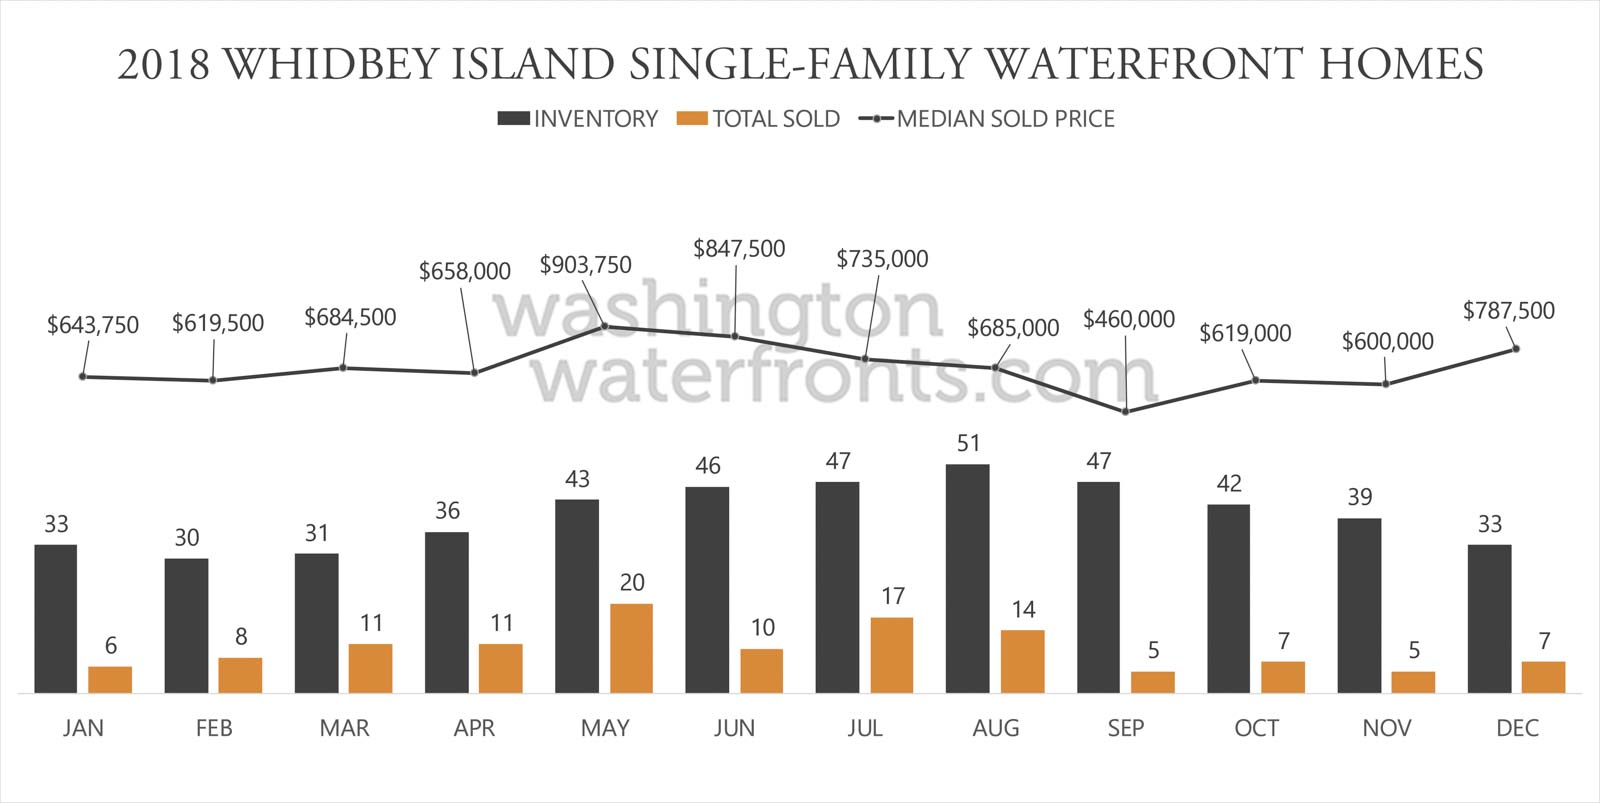 Whidbey Island Waterfront Inventory